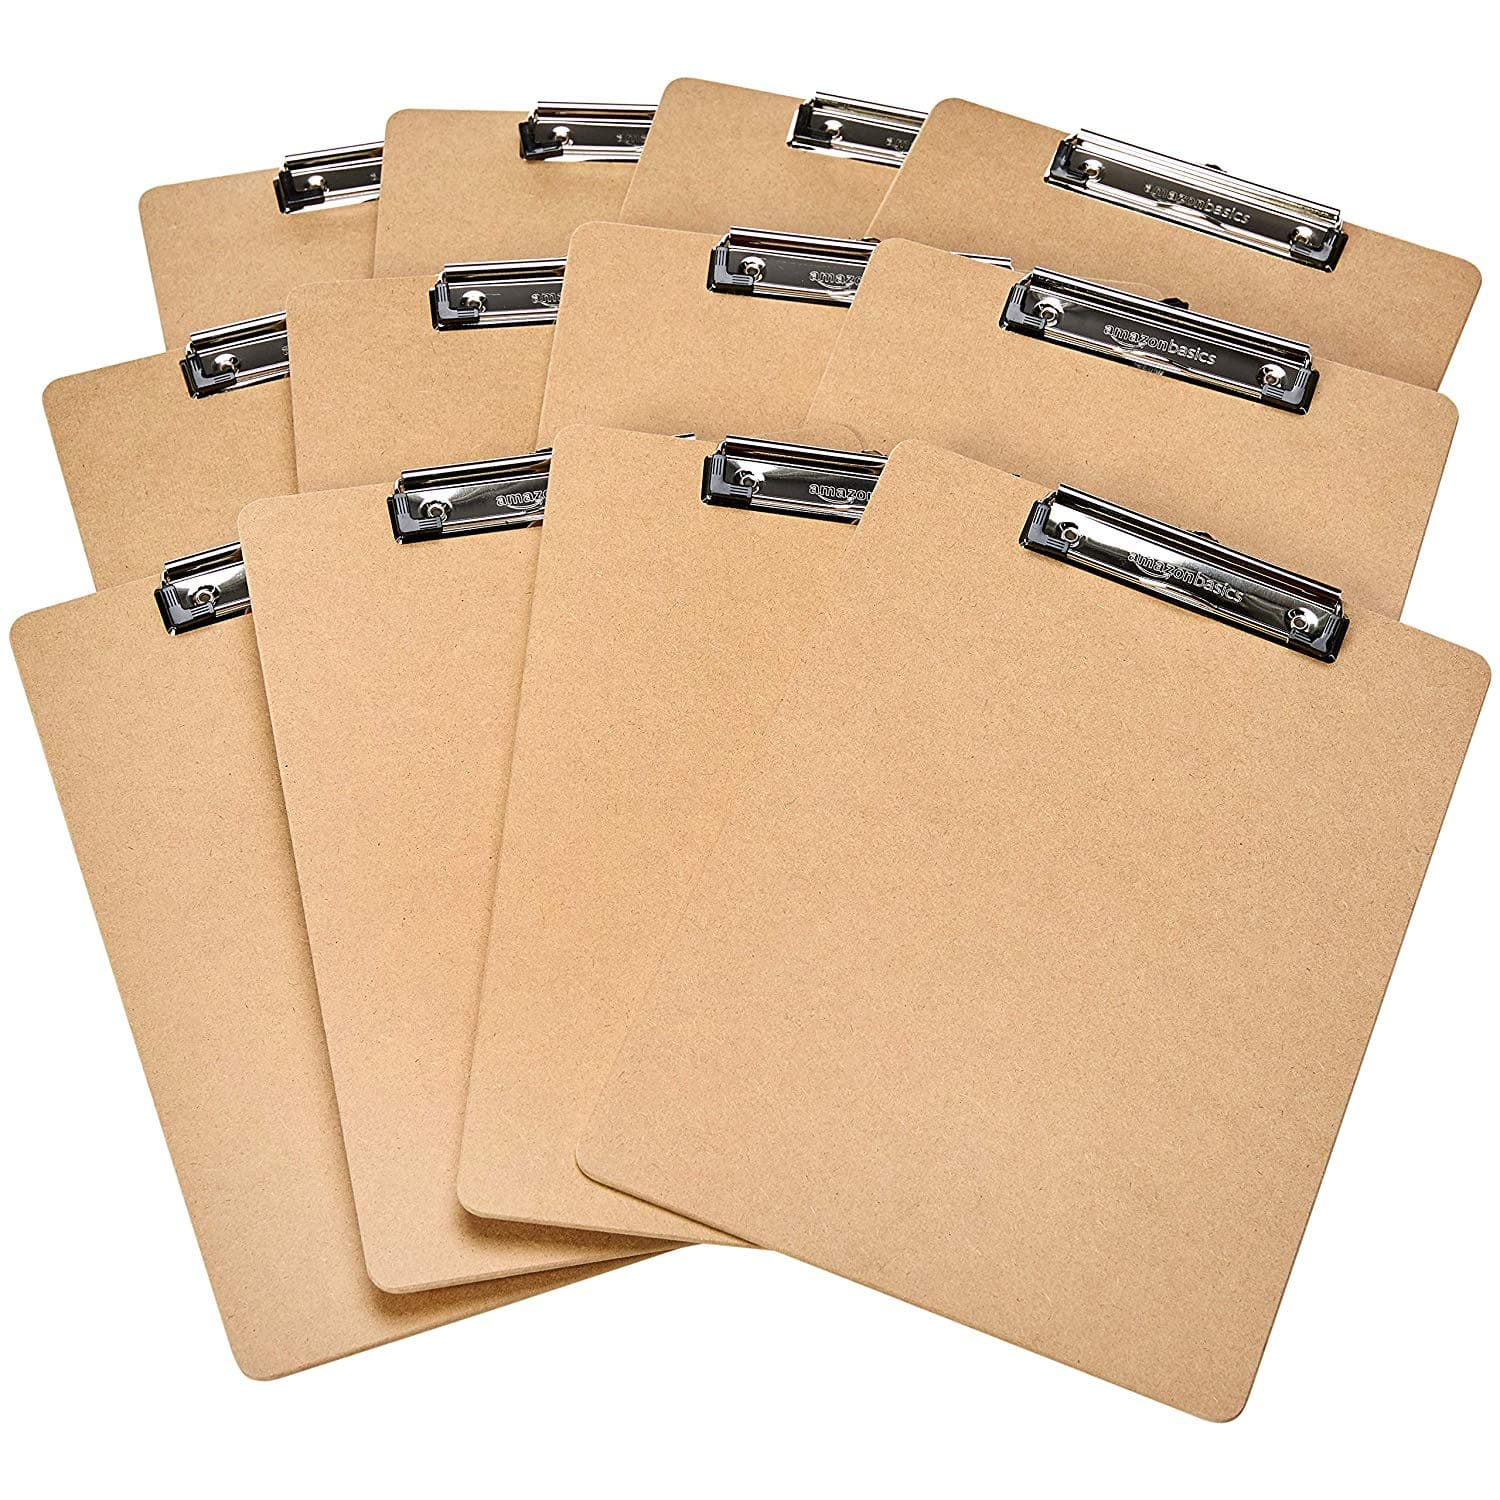 Add-on Item: 12-Pack AmazonBasics Hardboard Clipboard $4.56 ~ Amazon